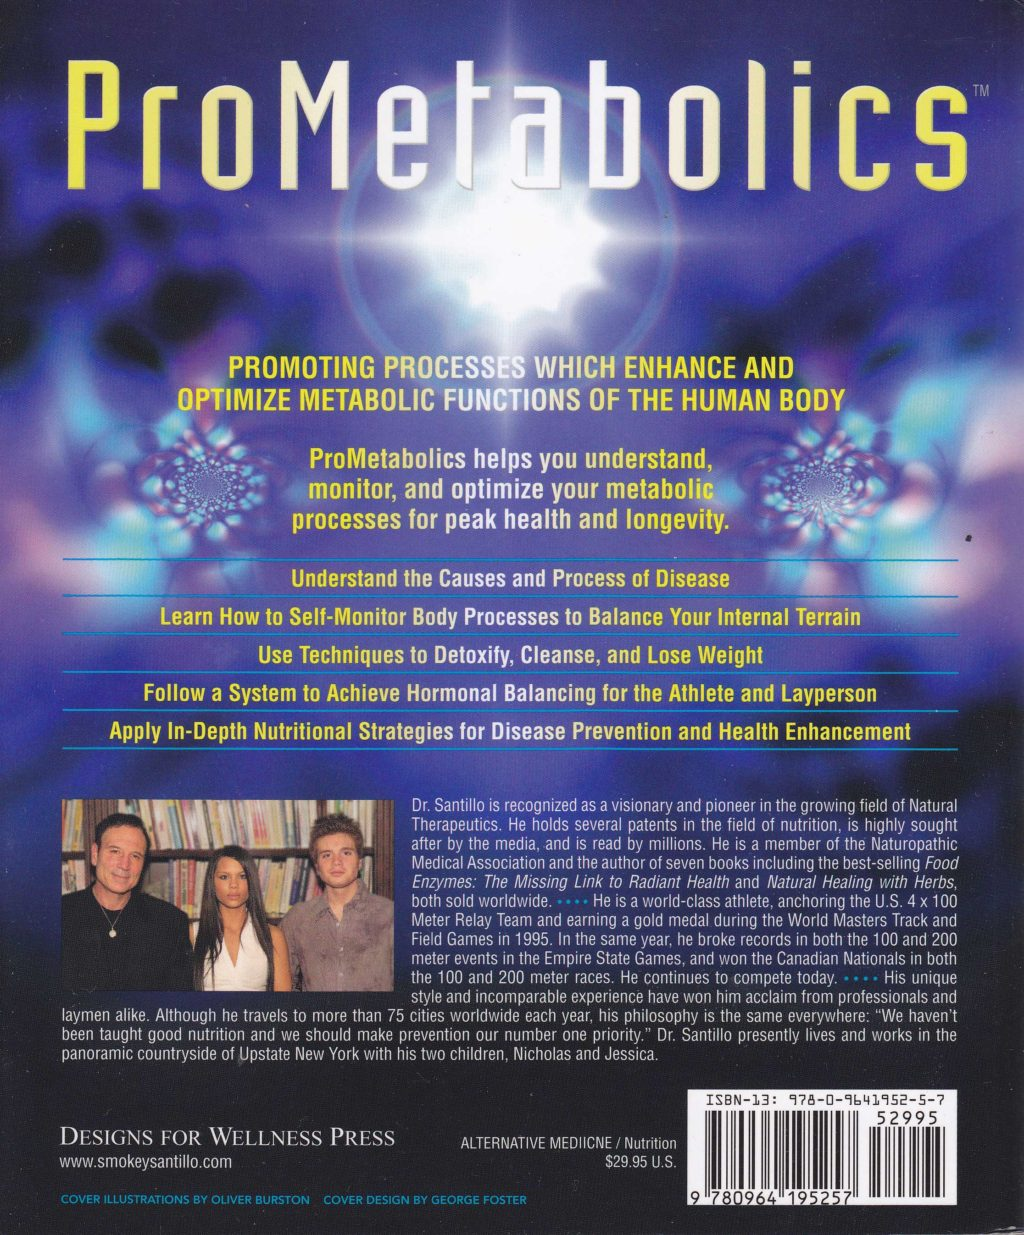 Prometabolics by Humbart Santillo ND (back cover)